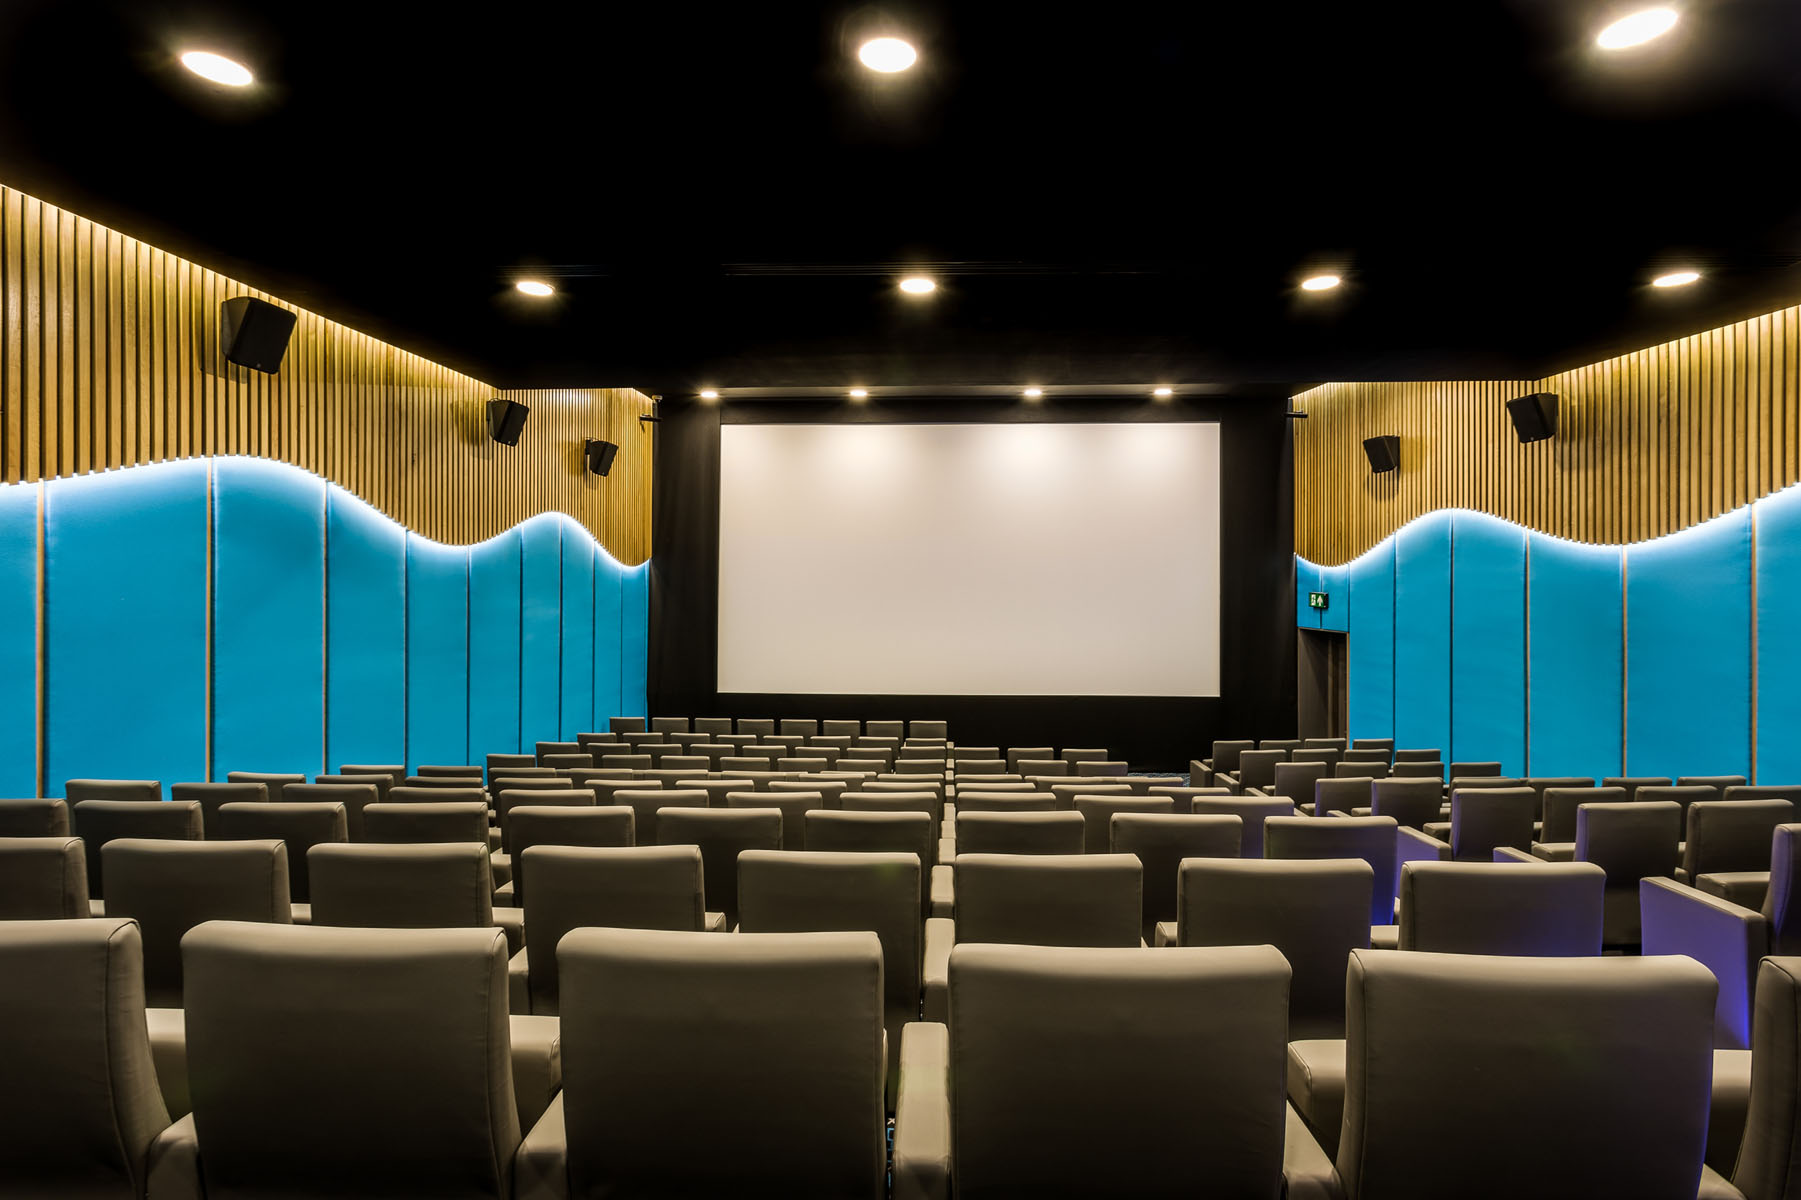 Hotel cinema screen